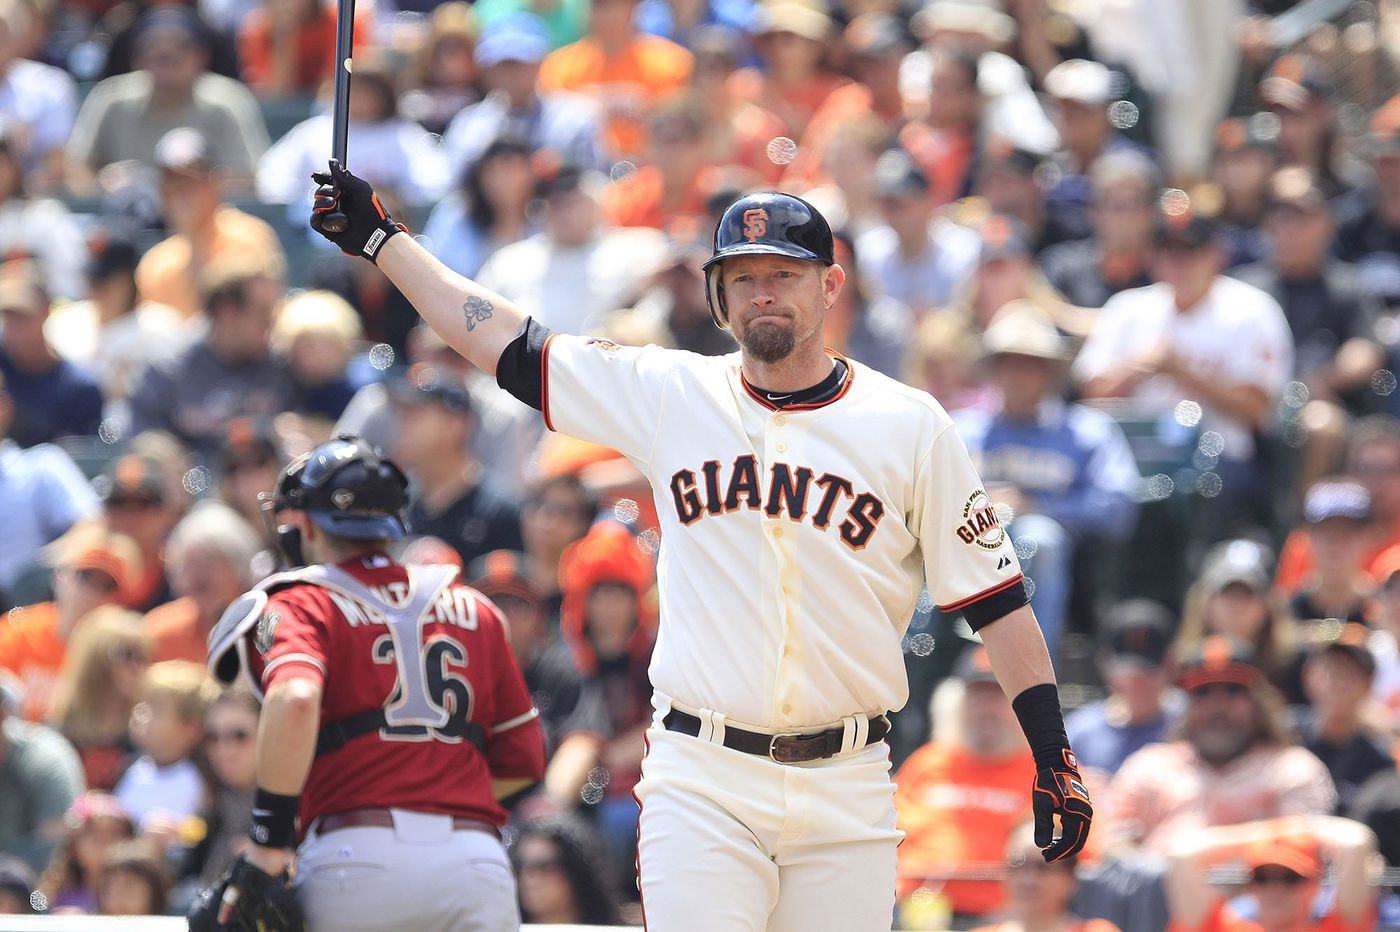 Sports chatter: Former MLB player Aubrey Huff 'would rather die' from coronavirus than wear a mask